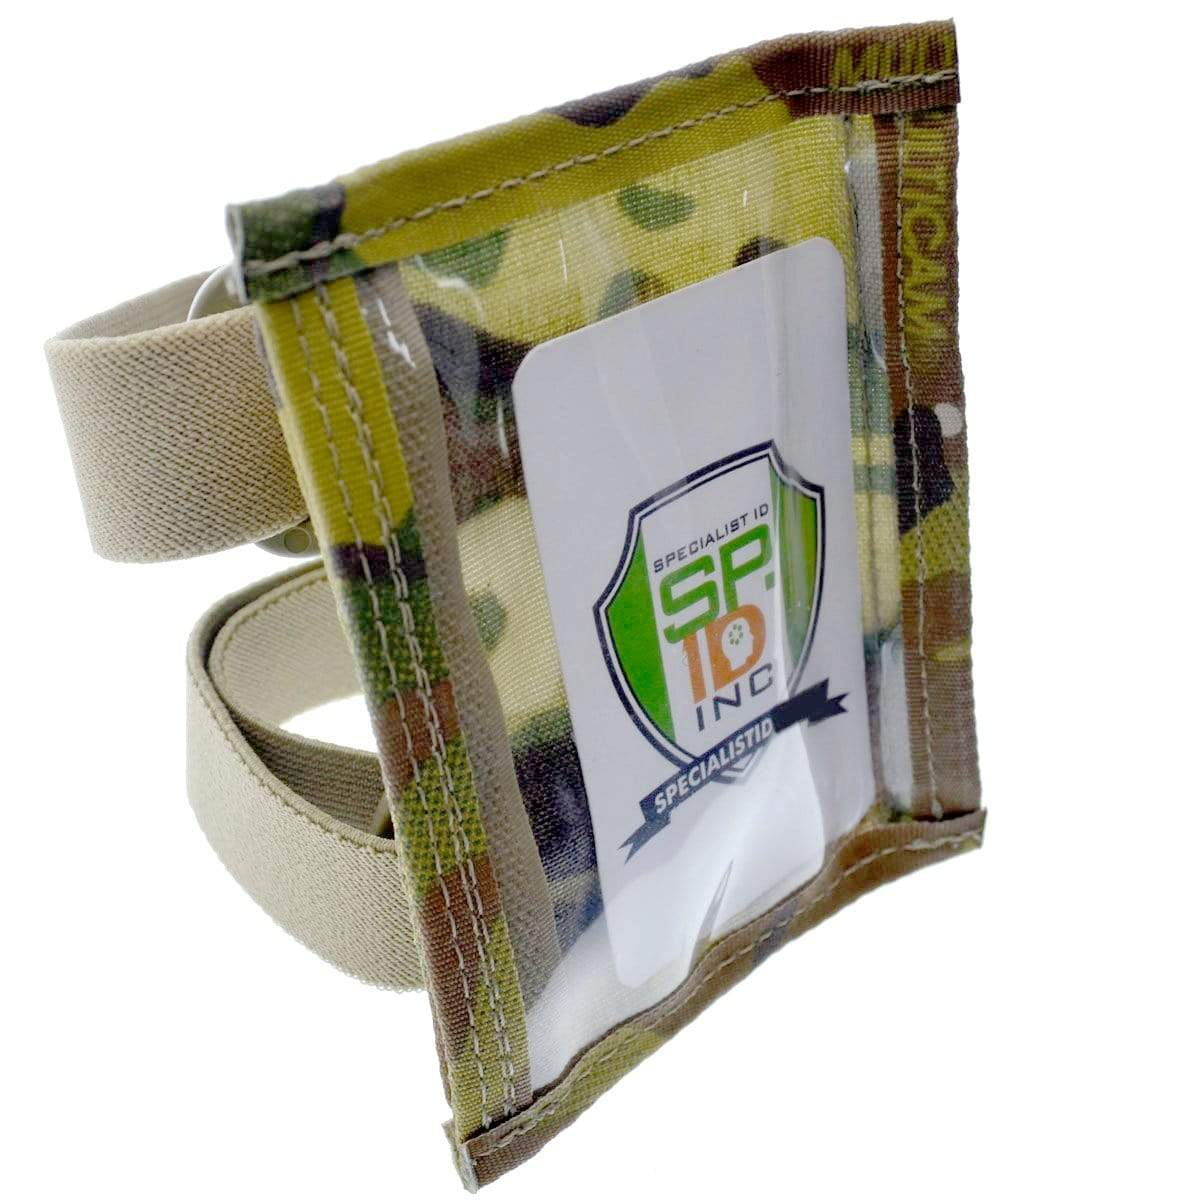 MultiCam Raine Military ID Badge Armband Holder with Two Straps (SPID-1090) SPID-1090-MULTICAM